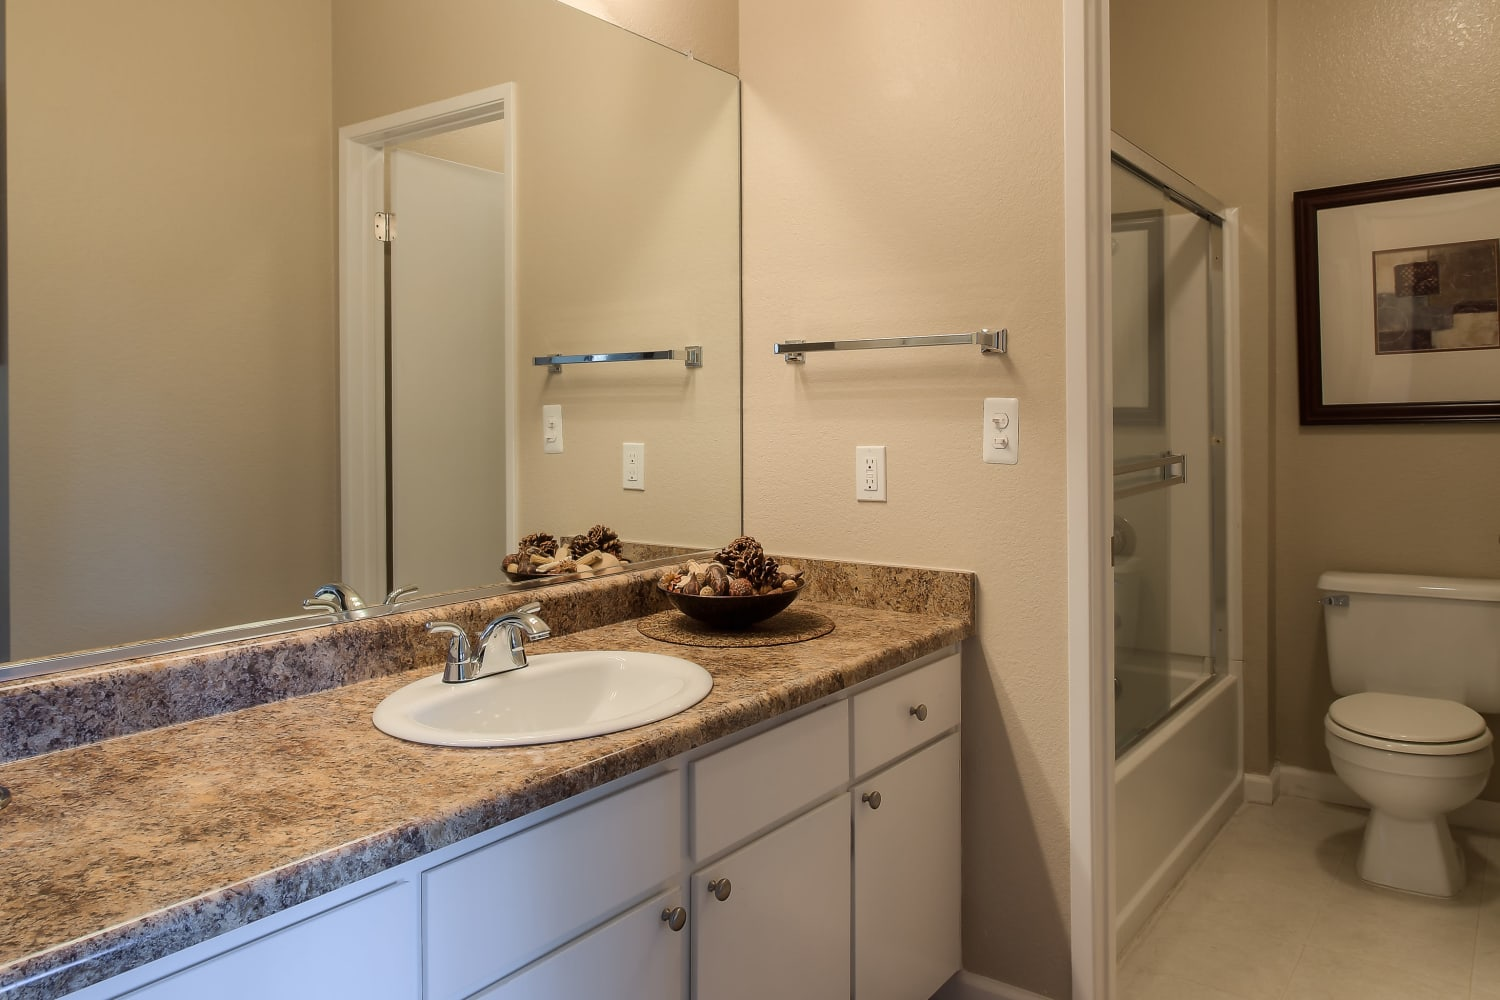 Cotton Wood Apartments in Dublin, California, offer bathrooms with ample counter space